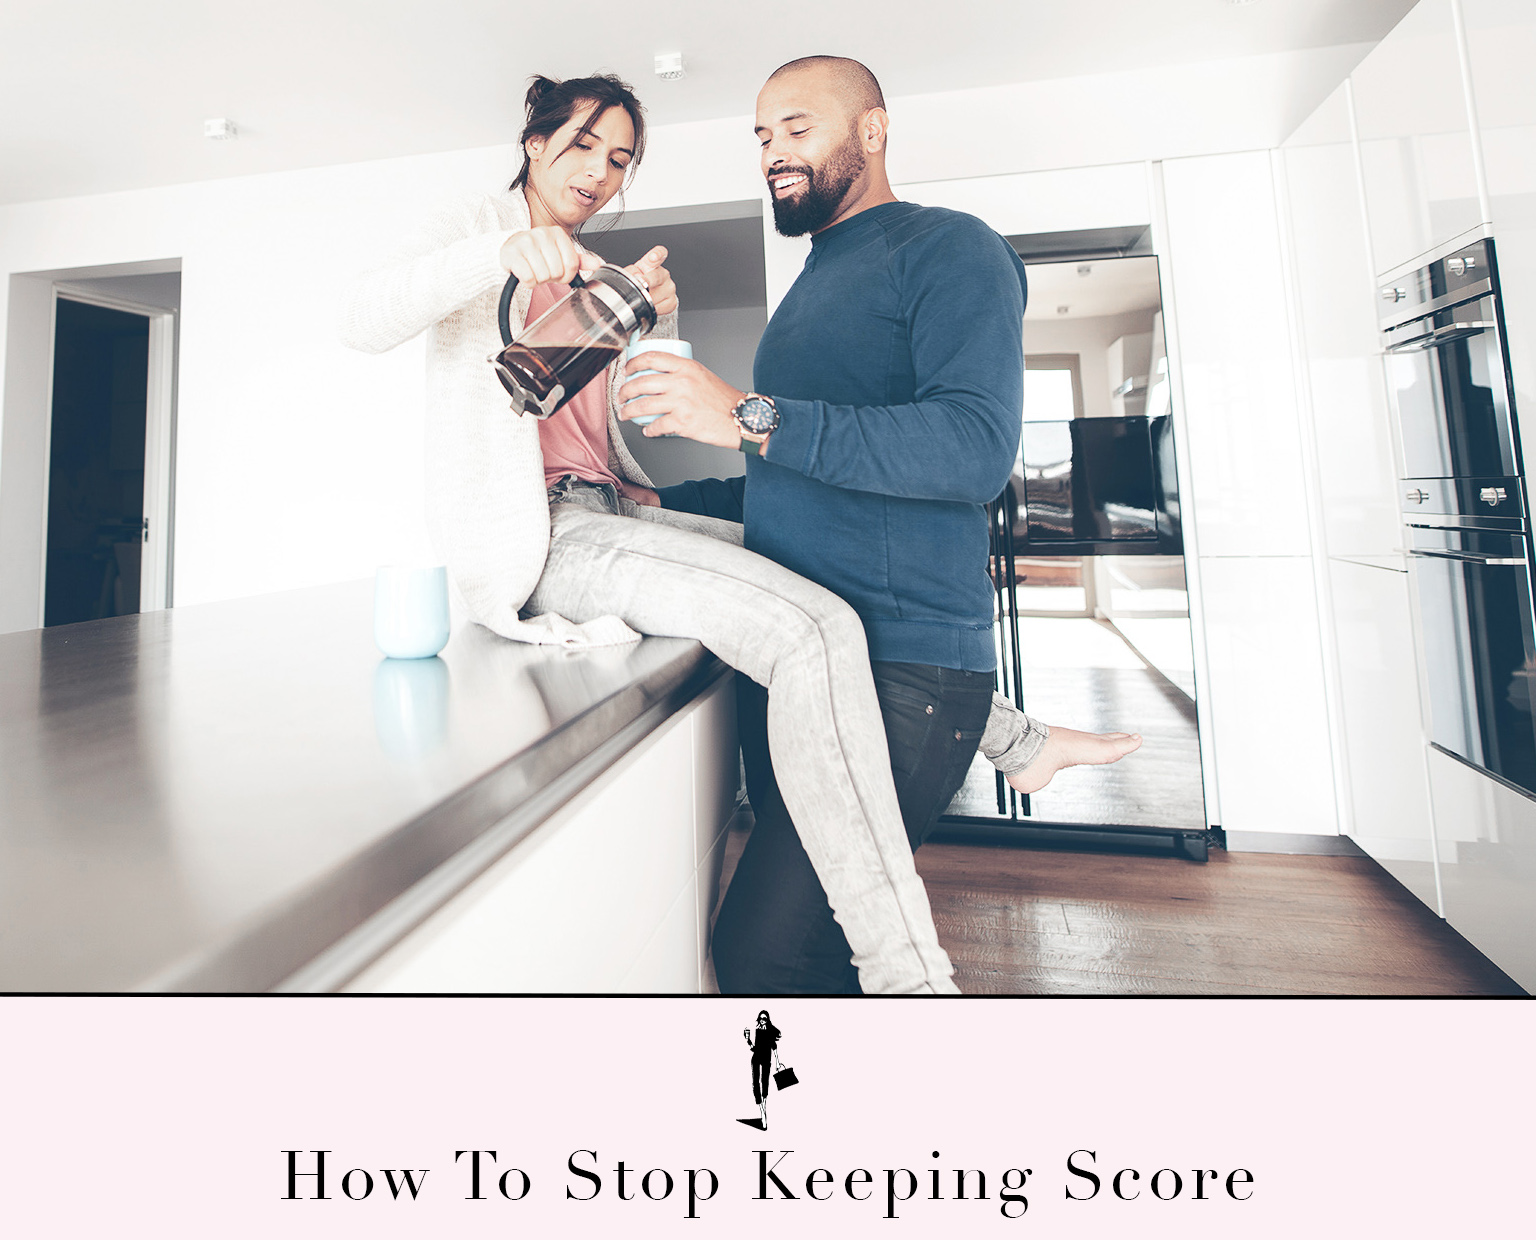 how to stop keeping score reddit